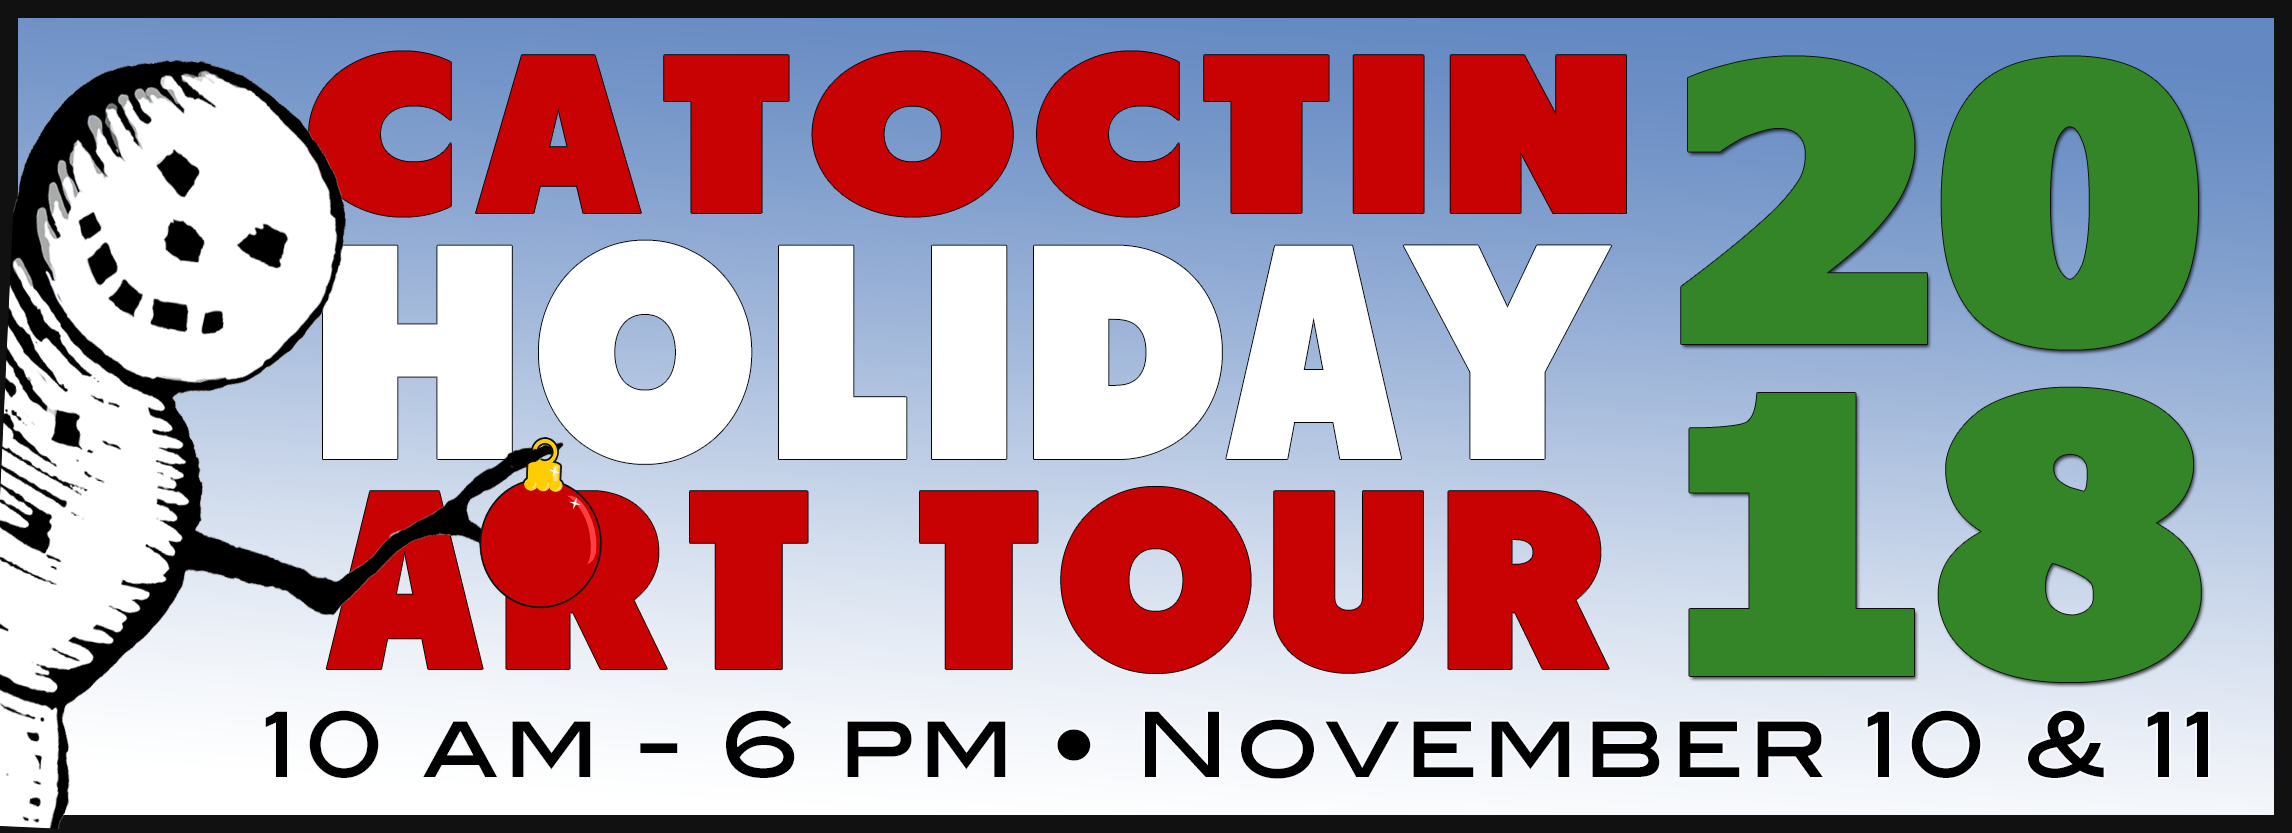 Catoctin Holiday Art Tour - November 10-11, 2017 - 10am-6pm